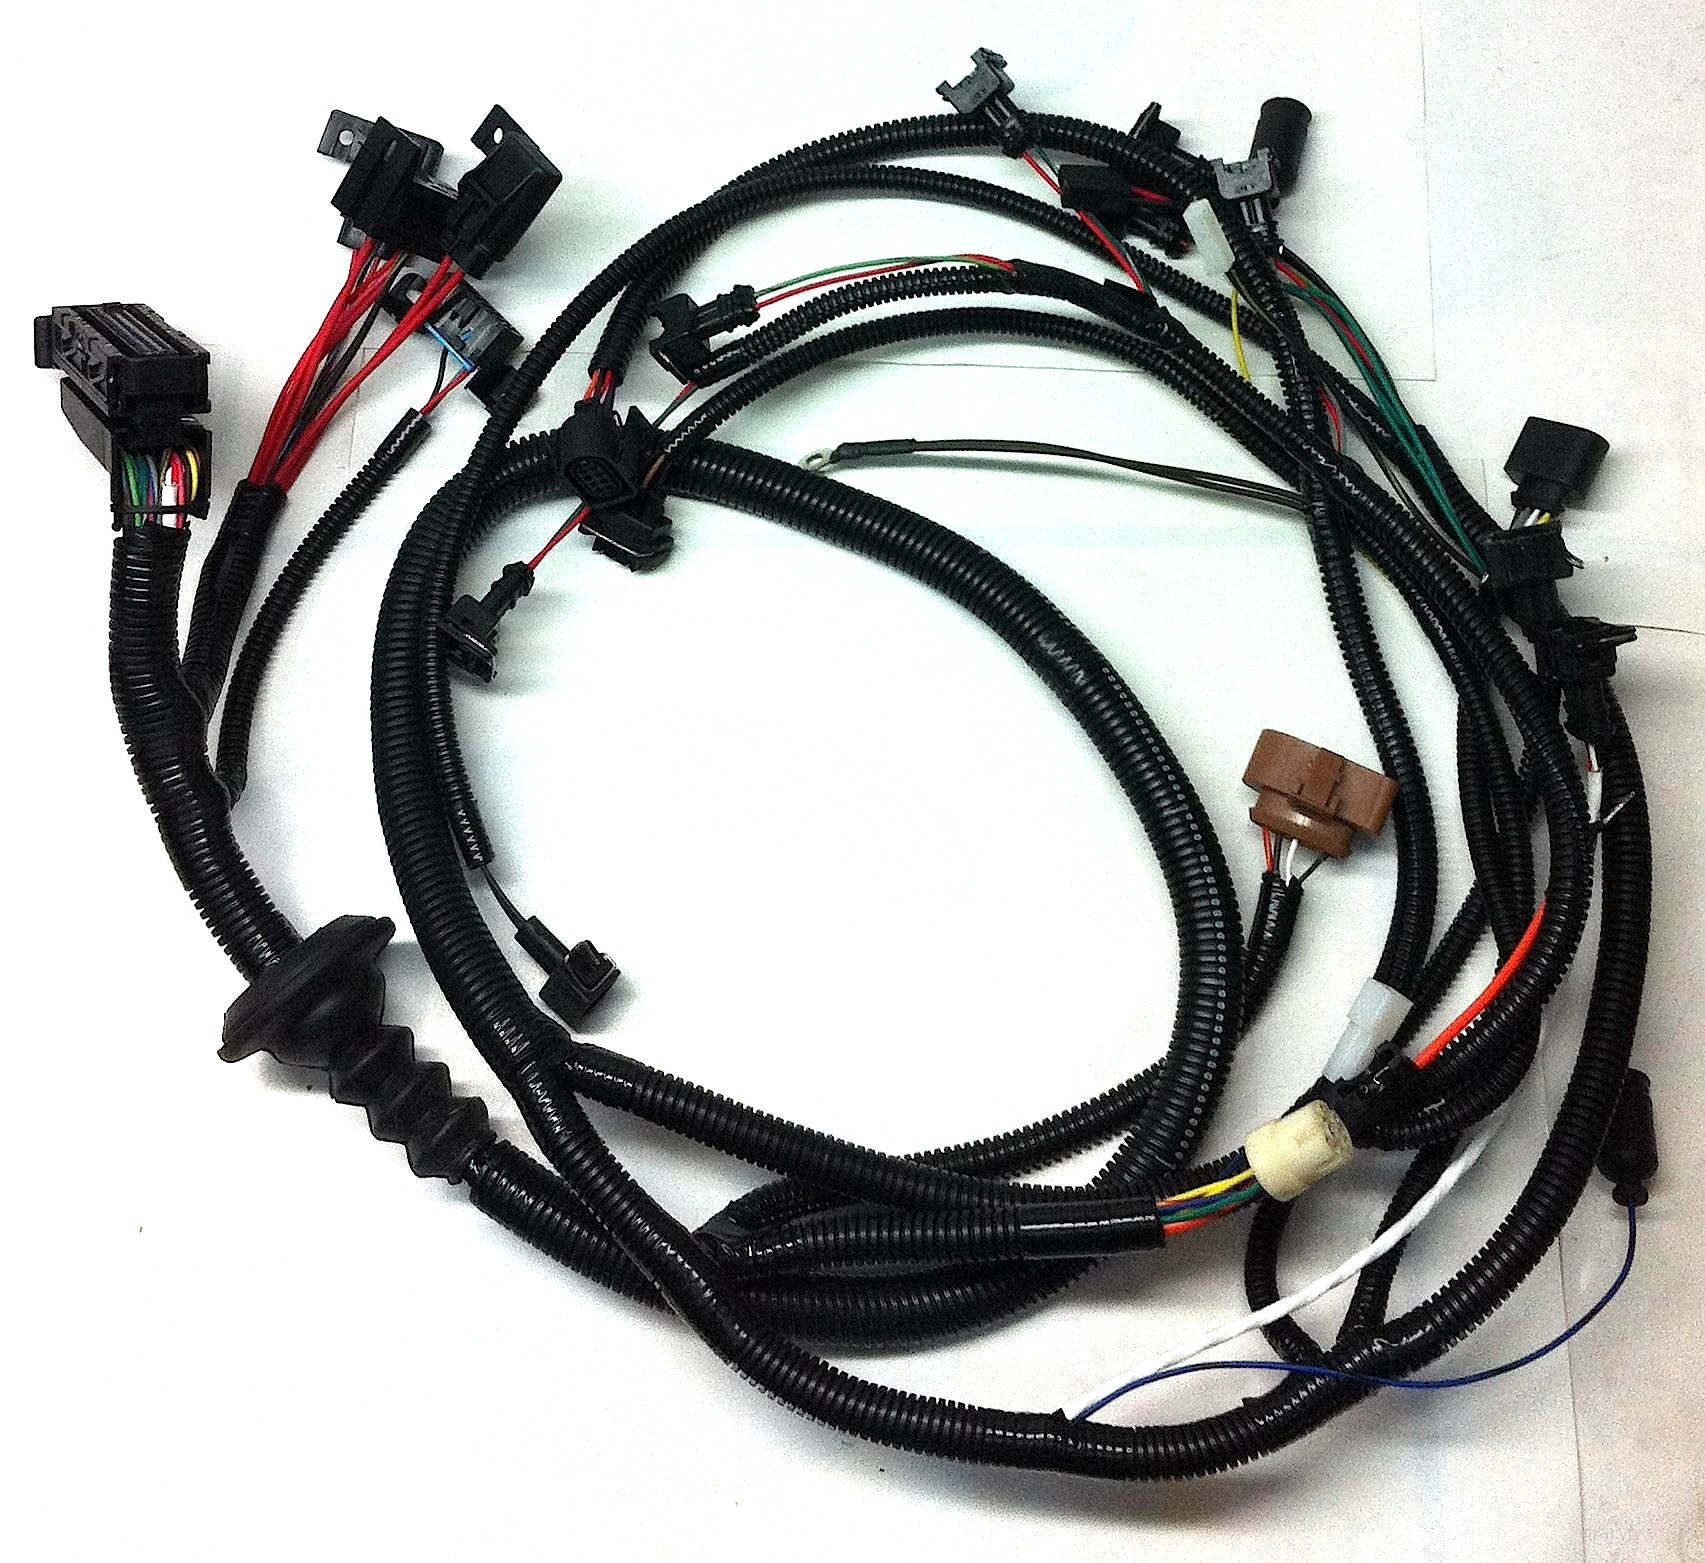 Wiring_Harness_2LR 2lr tiico conversion wiring harness foreign auto & supply, inc tdi swap wiring harness at fashall.co